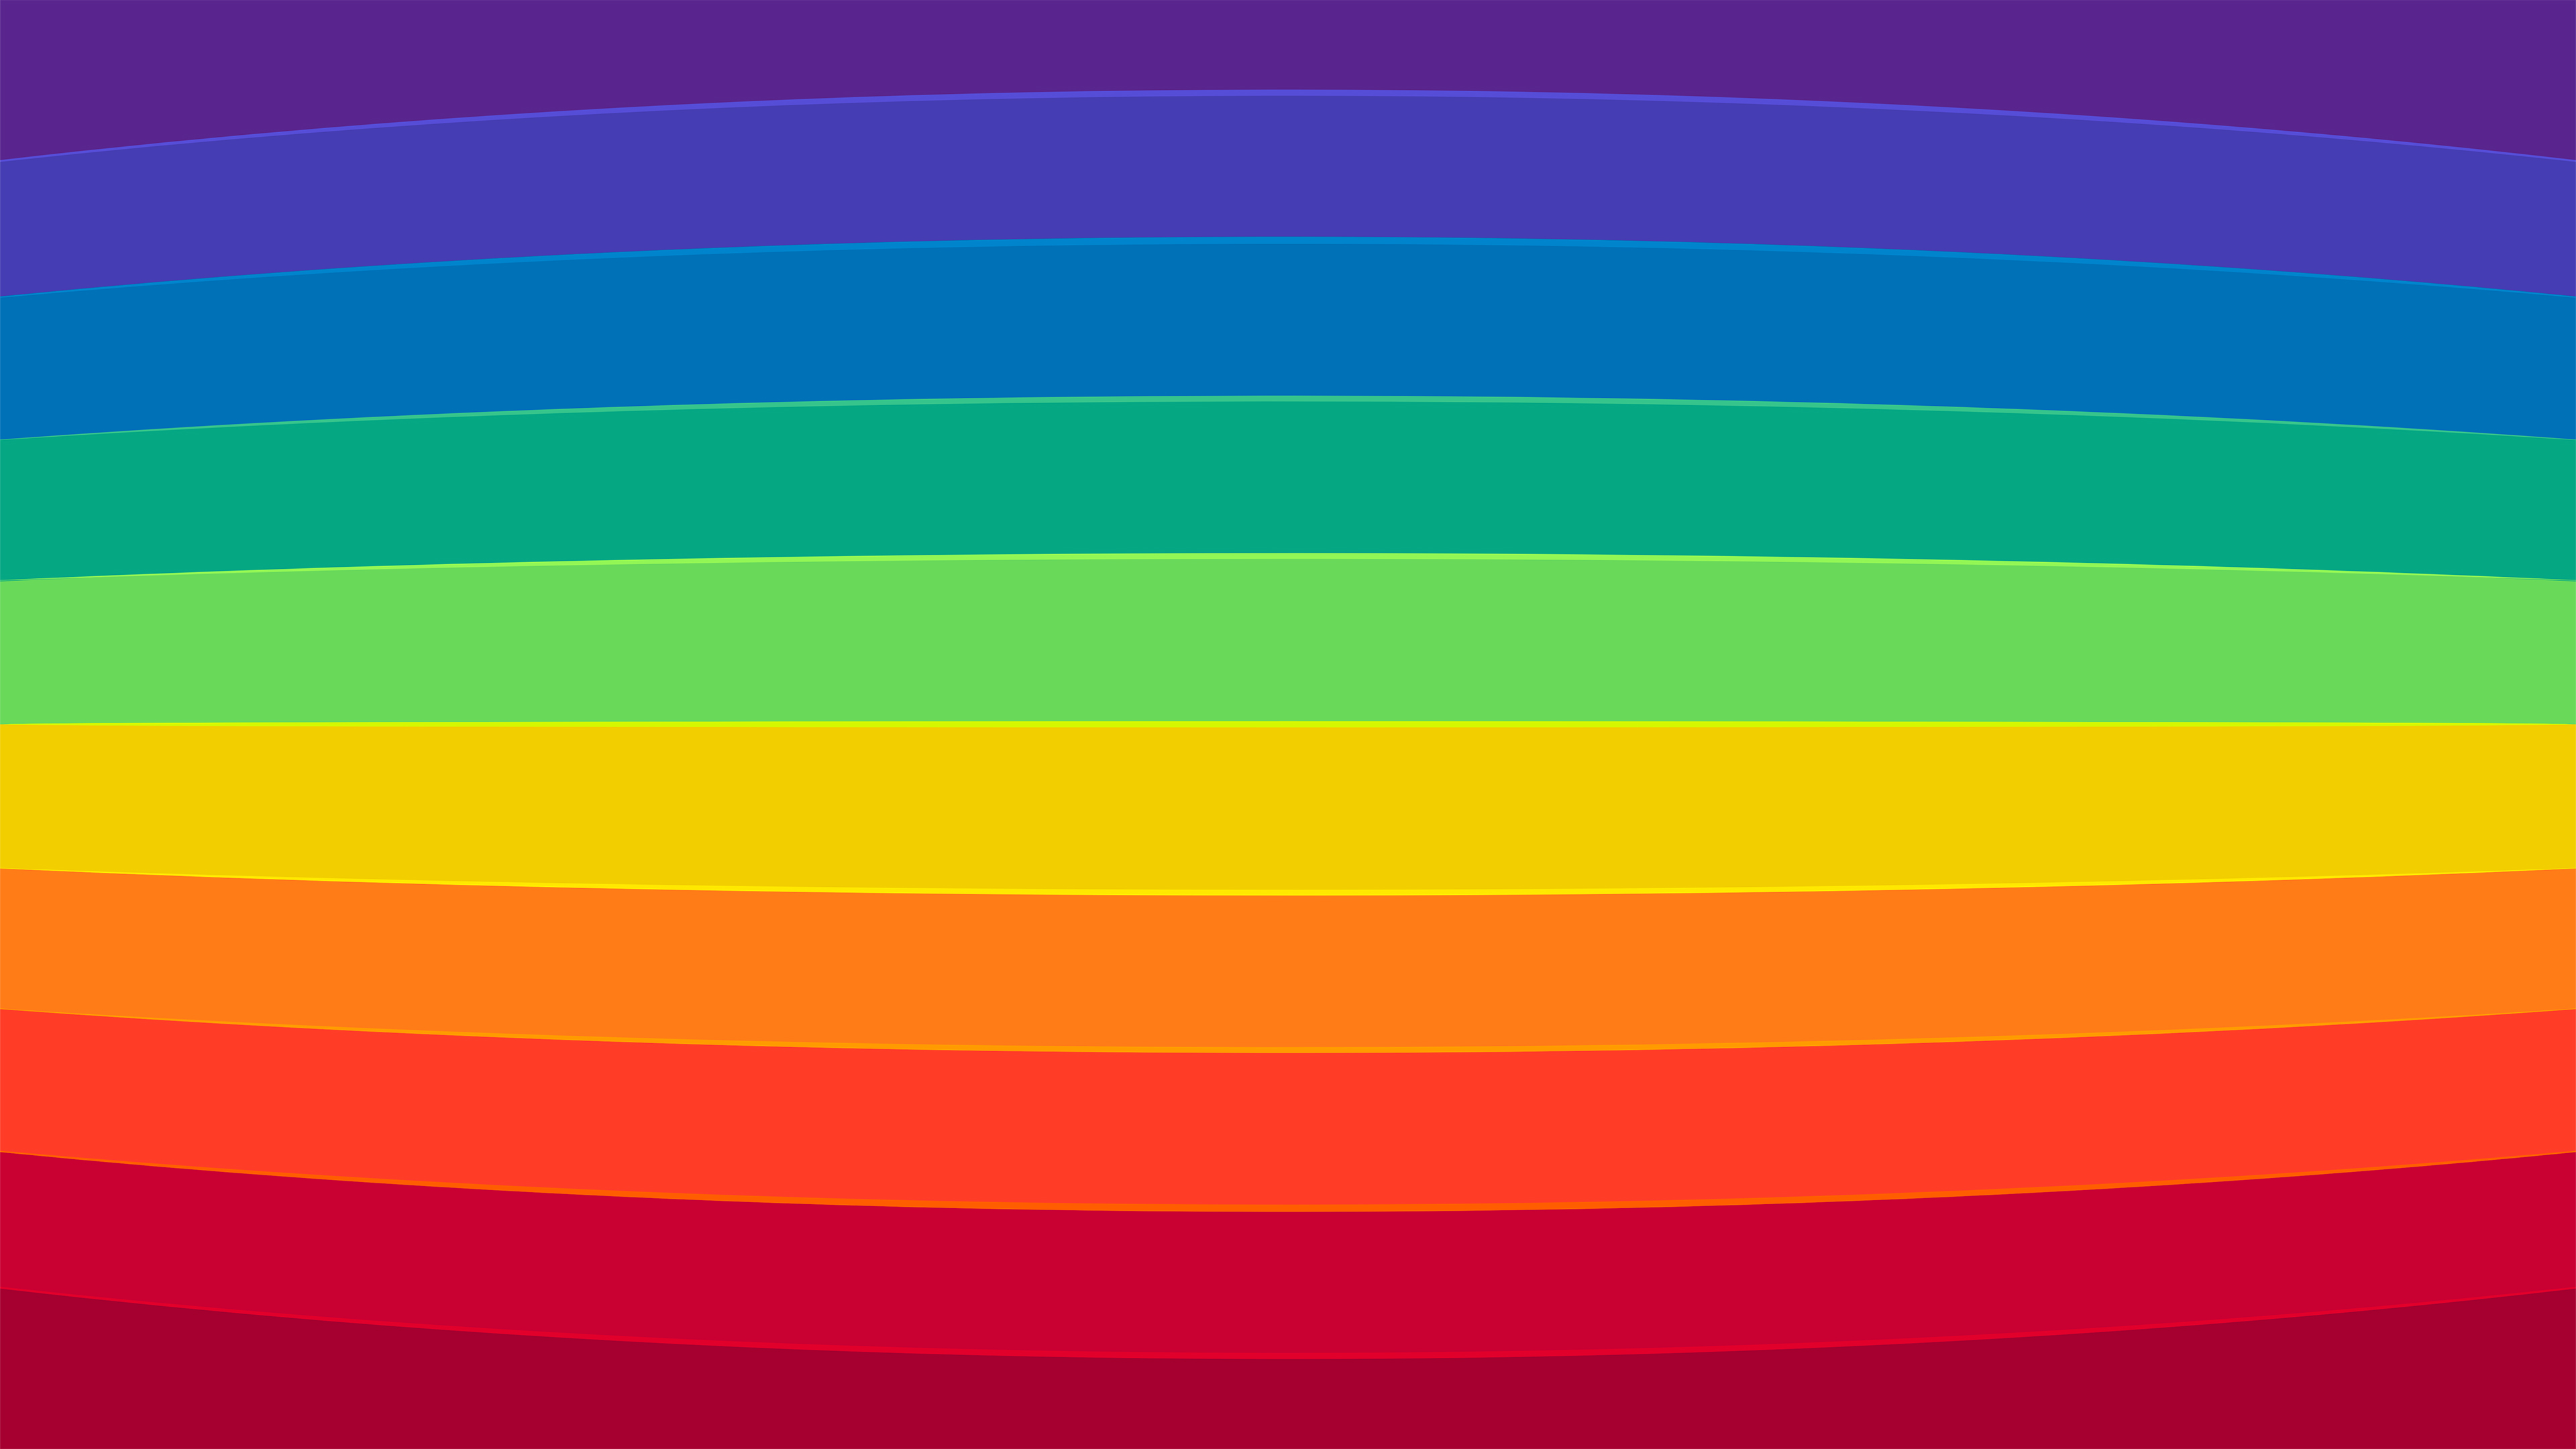 Rainbow 4k Lines Wallpaper Hd Artist 4k Wallpapers Images Photos And Background